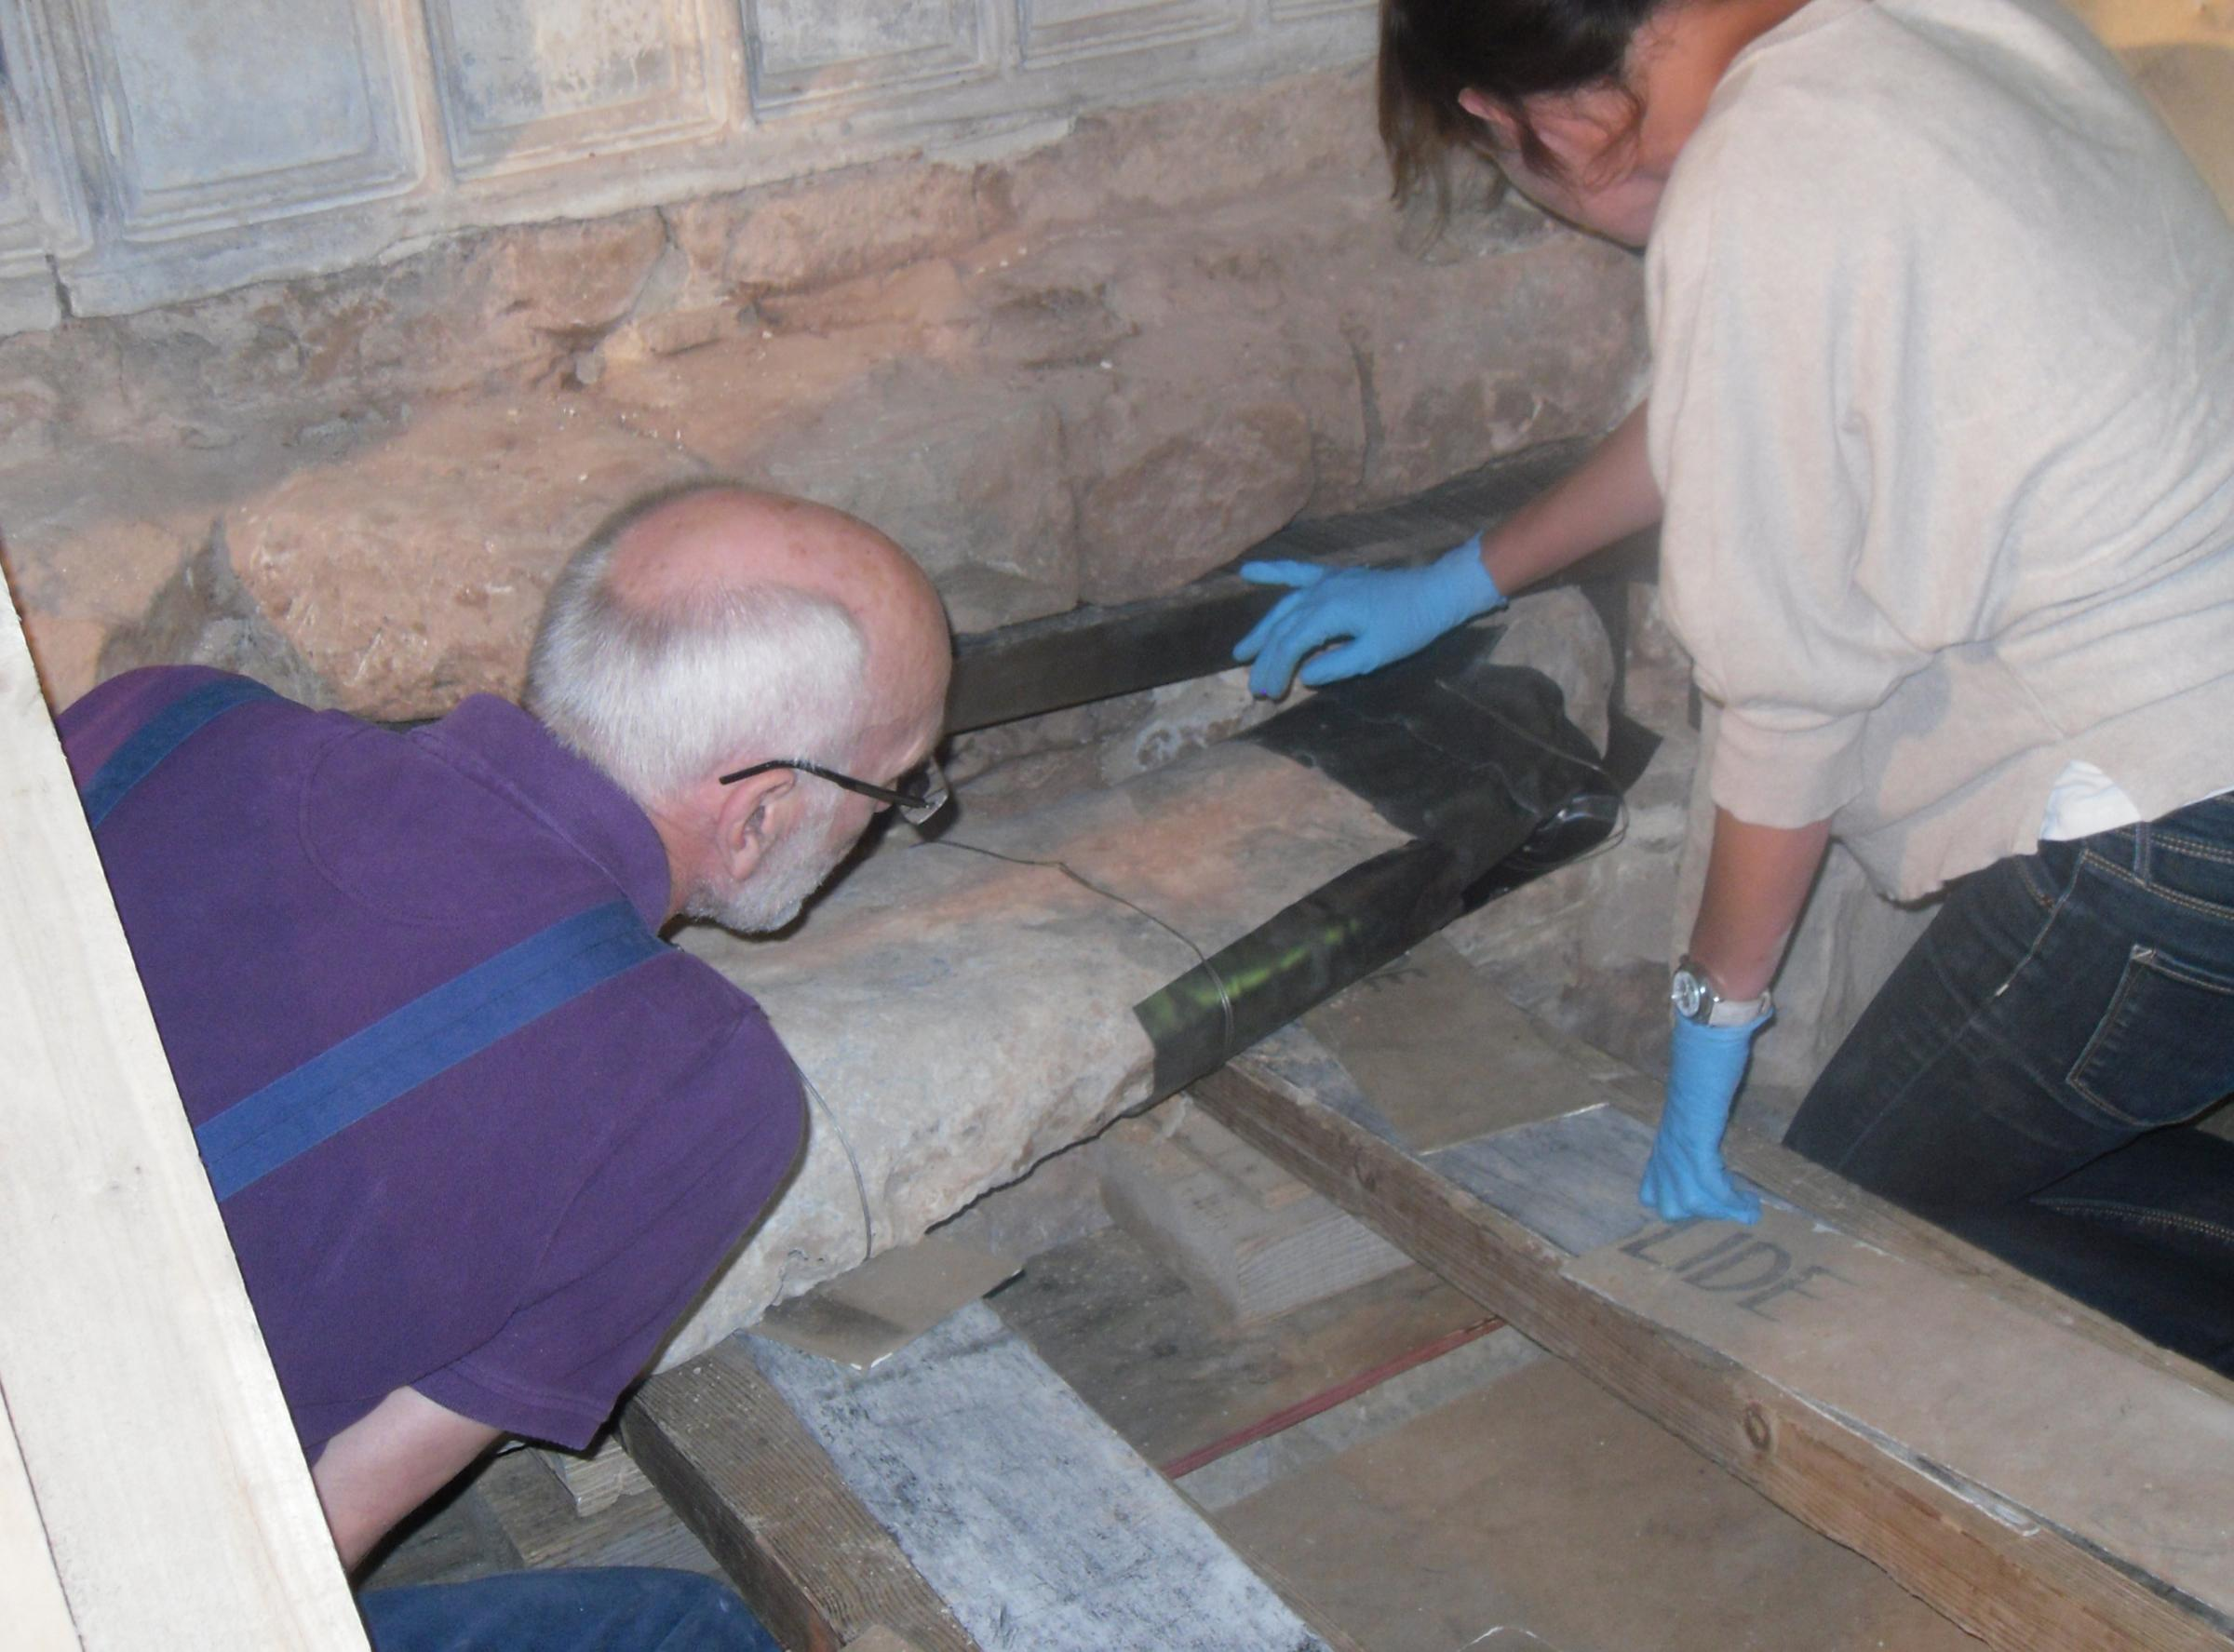 'Body in the tomb' discovery at church near Ledbury